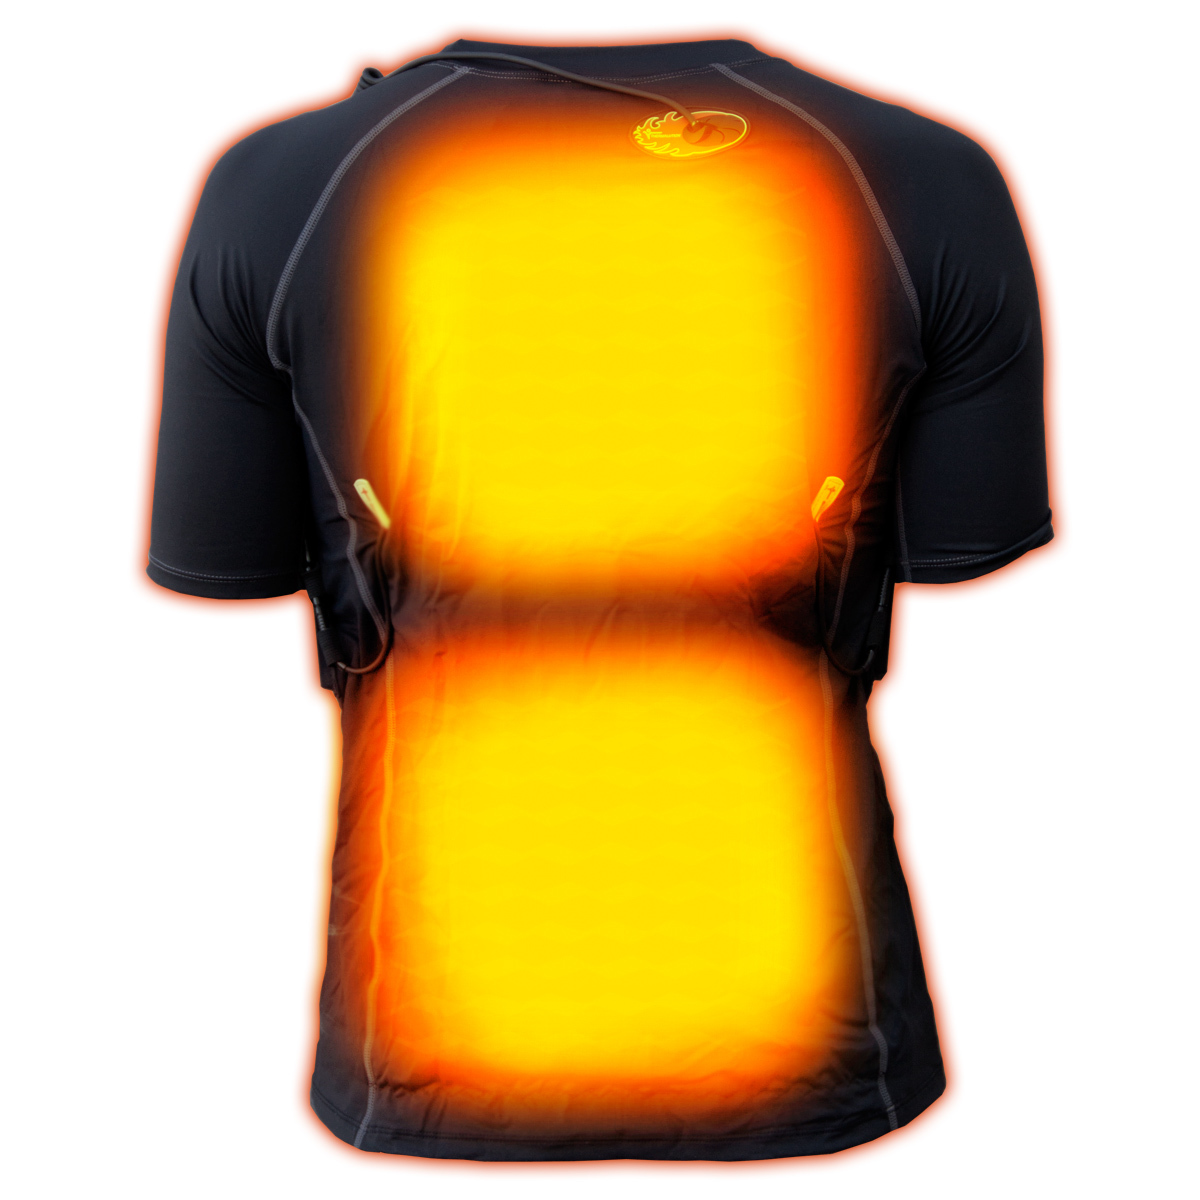 Thermalution Heated Undersuit -70M (Shortsleeve)